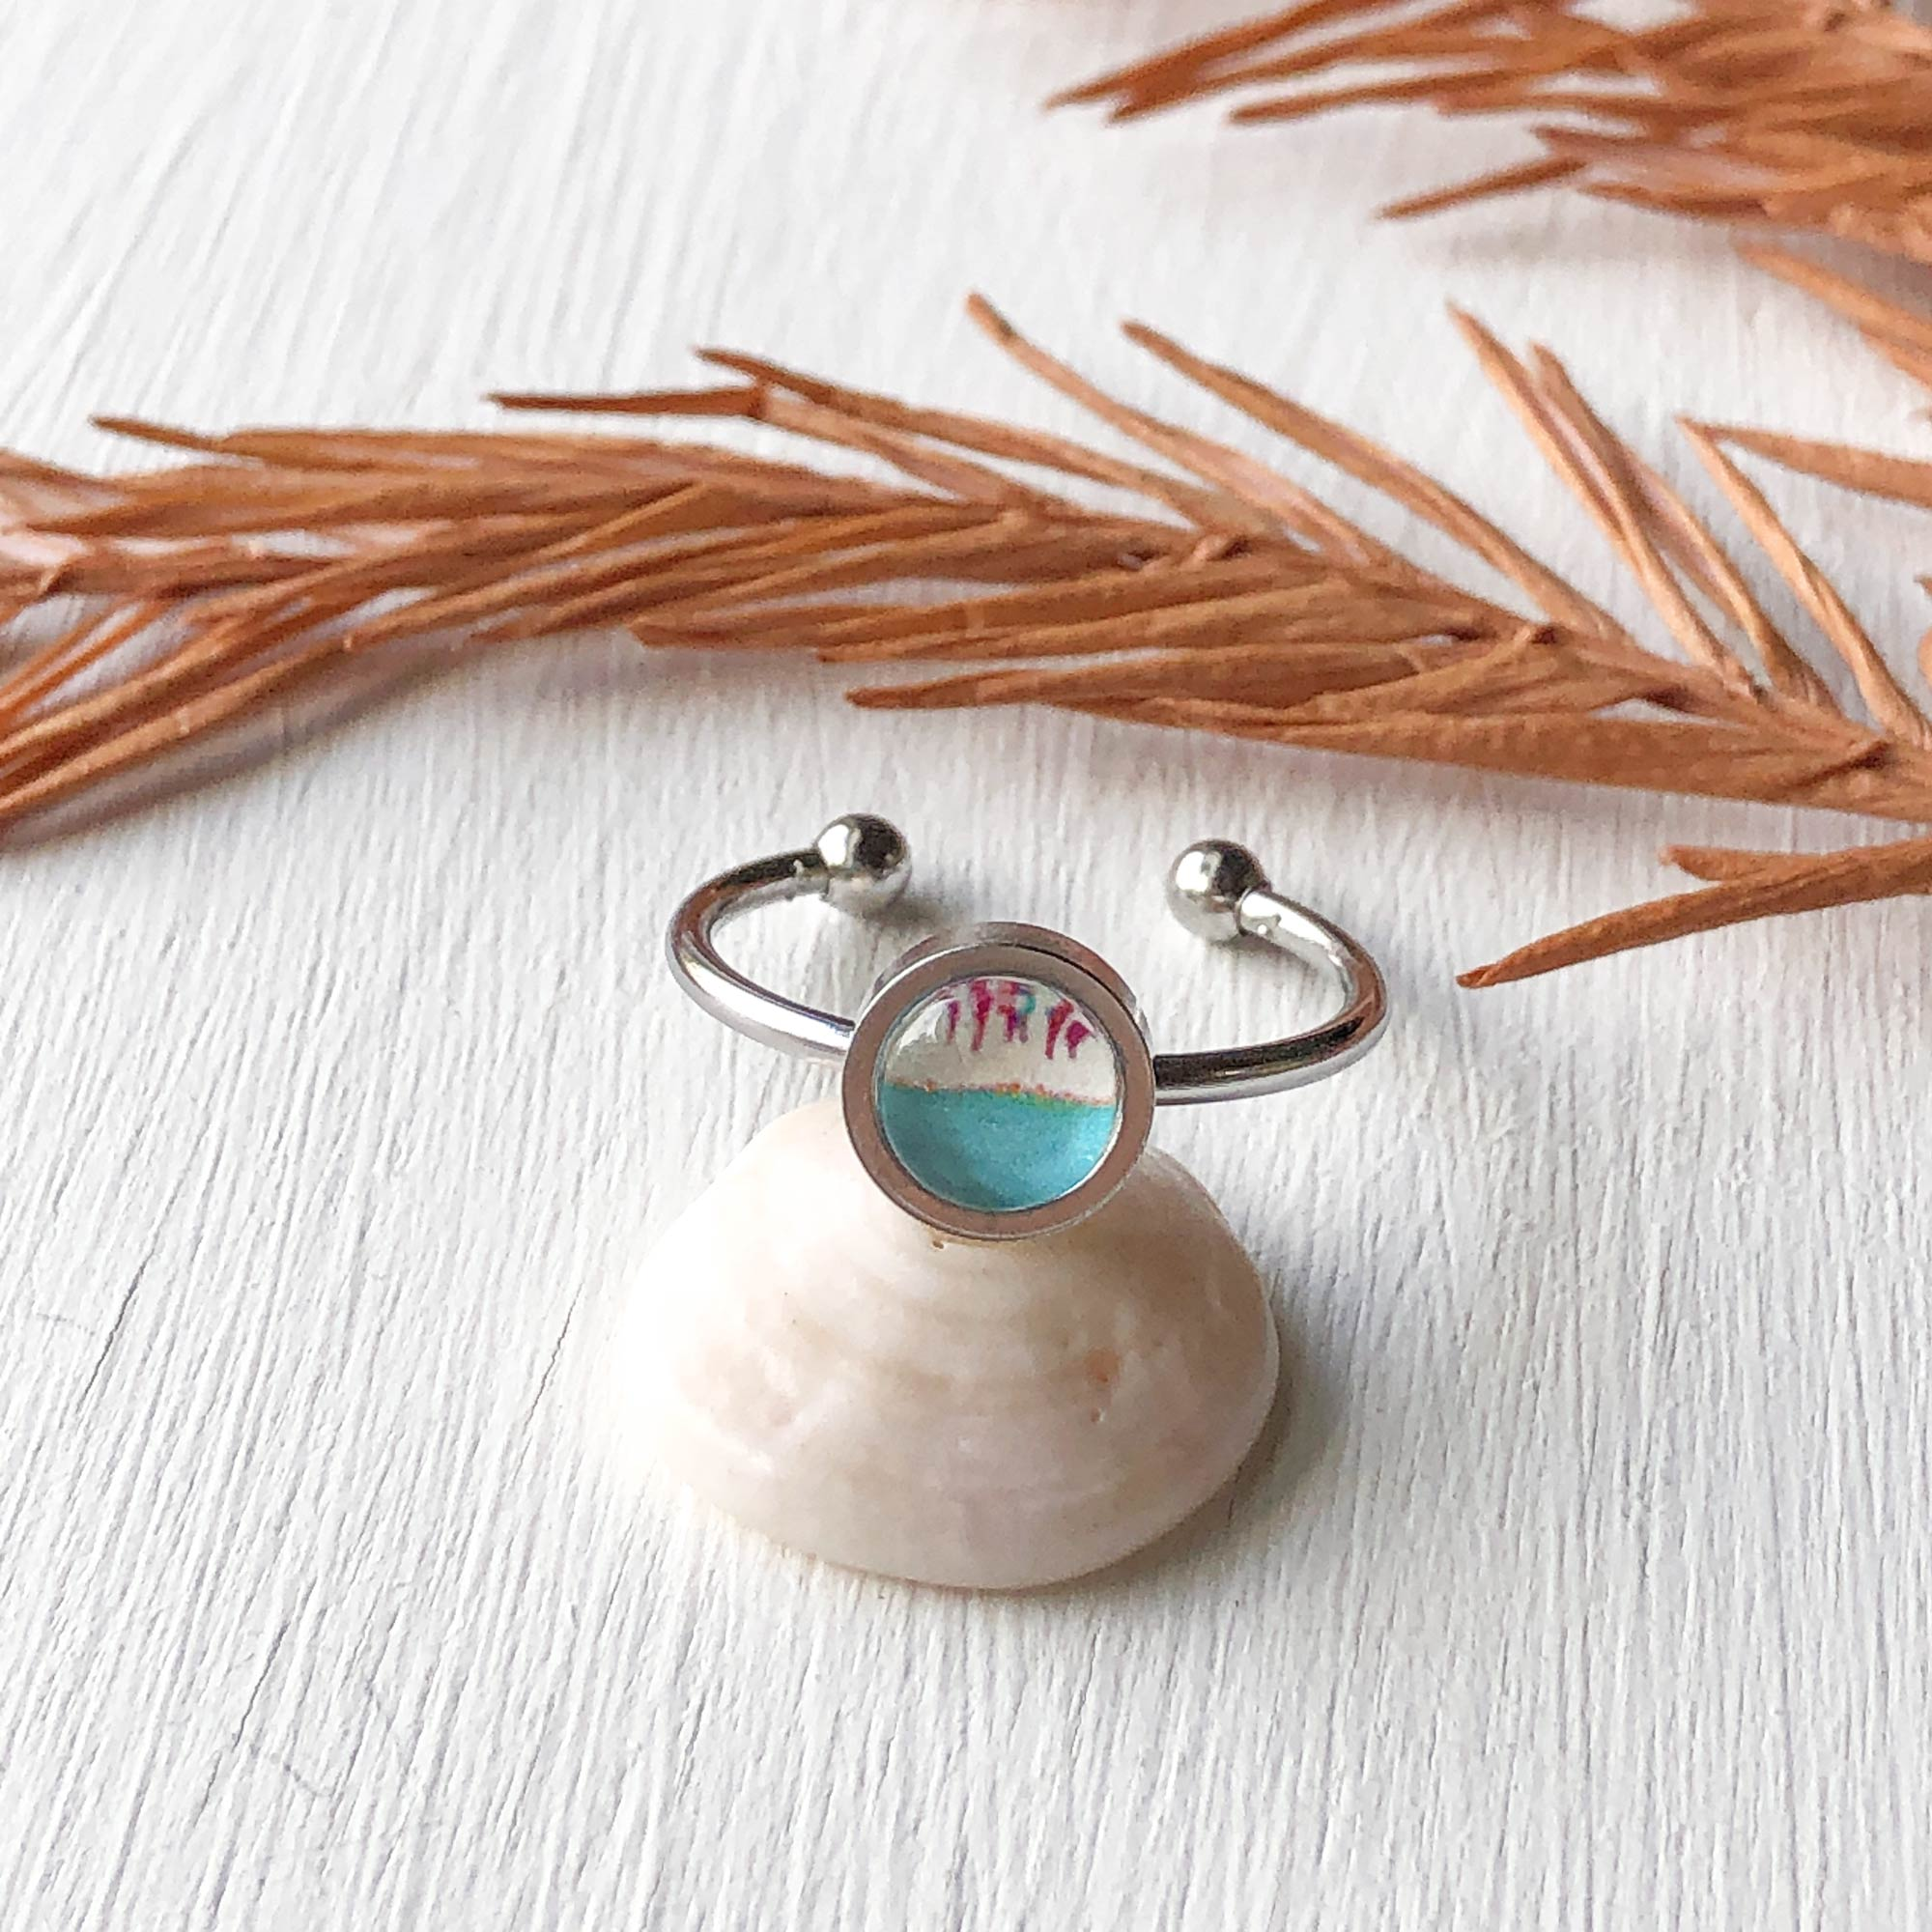 April Showers - Adjustable Tiny Ring